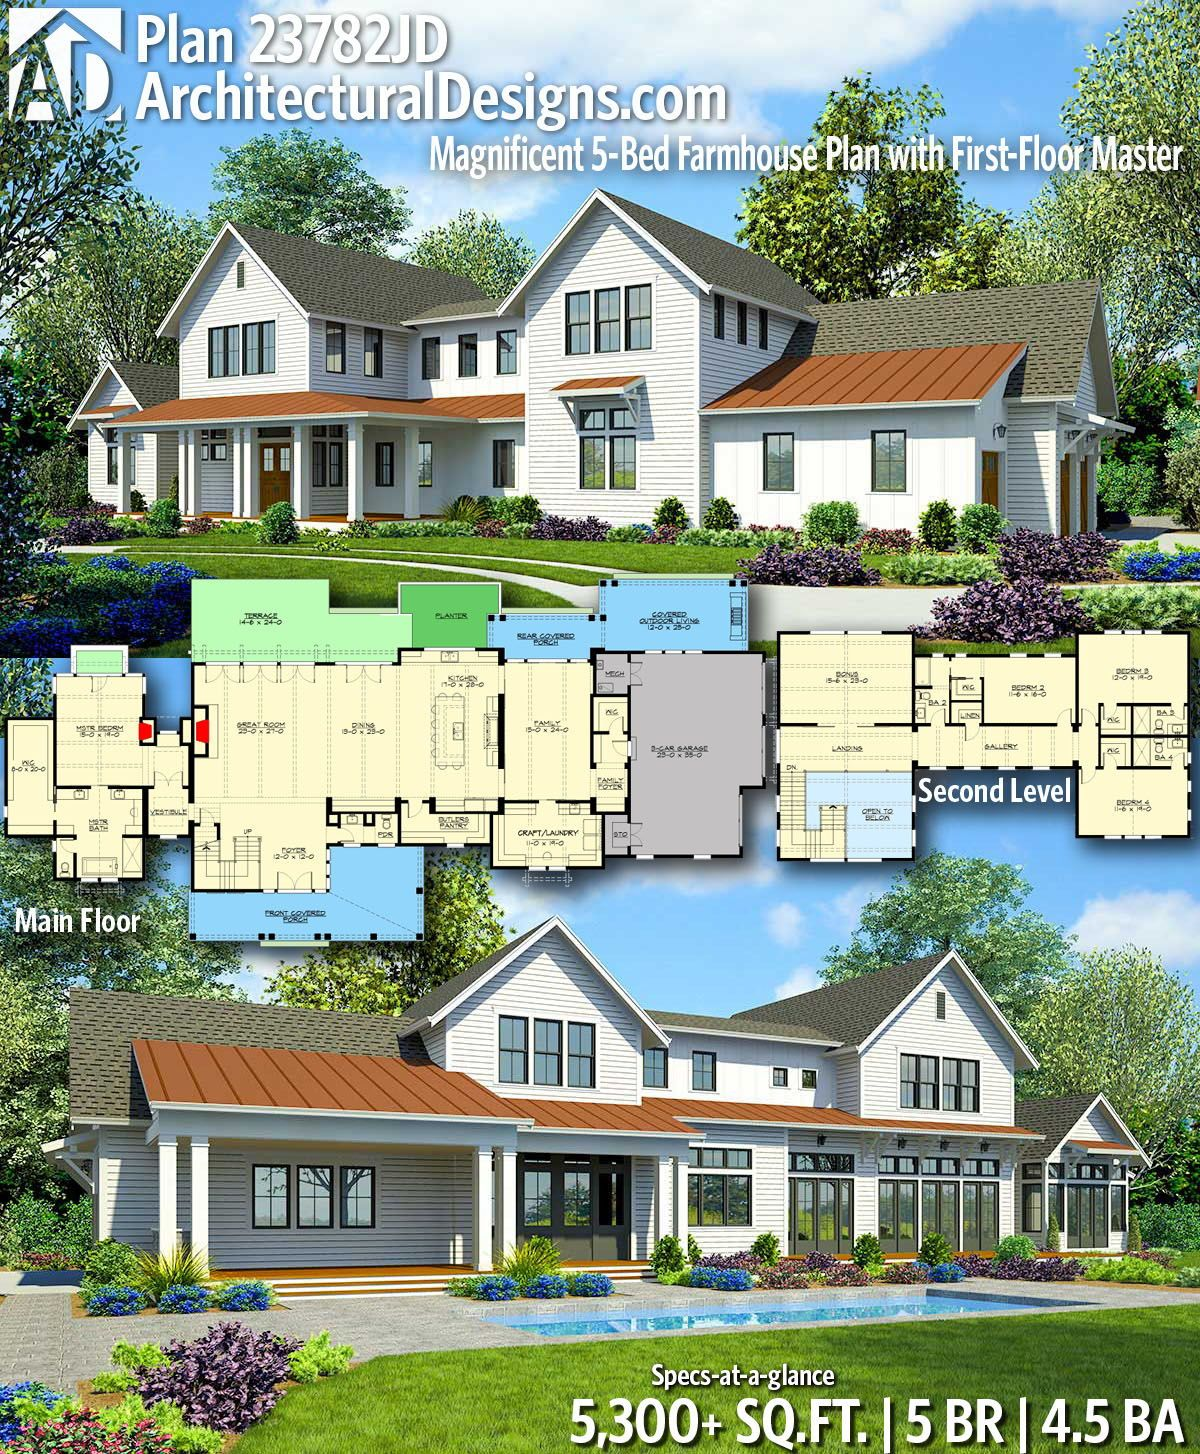 Architectural designs new american plan jd gives you bedrooms baths and sq ft ready when are where do want to build also bedroom beautiful home design with free floor kerala rh pinterest